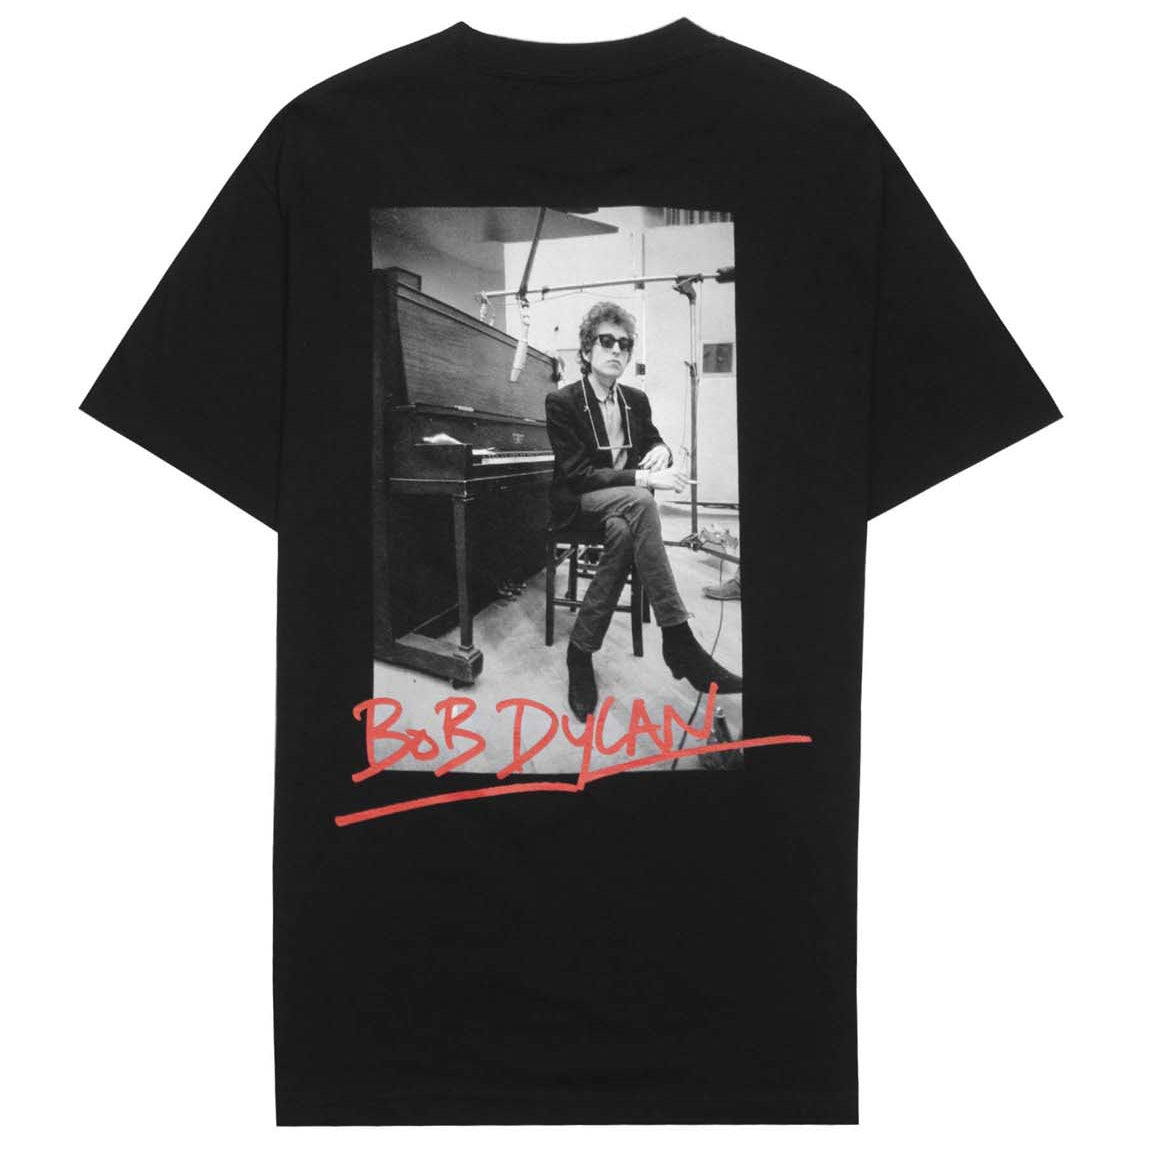 Bob Dylan Heaven's Door Short Sleeve Shirt (Black)